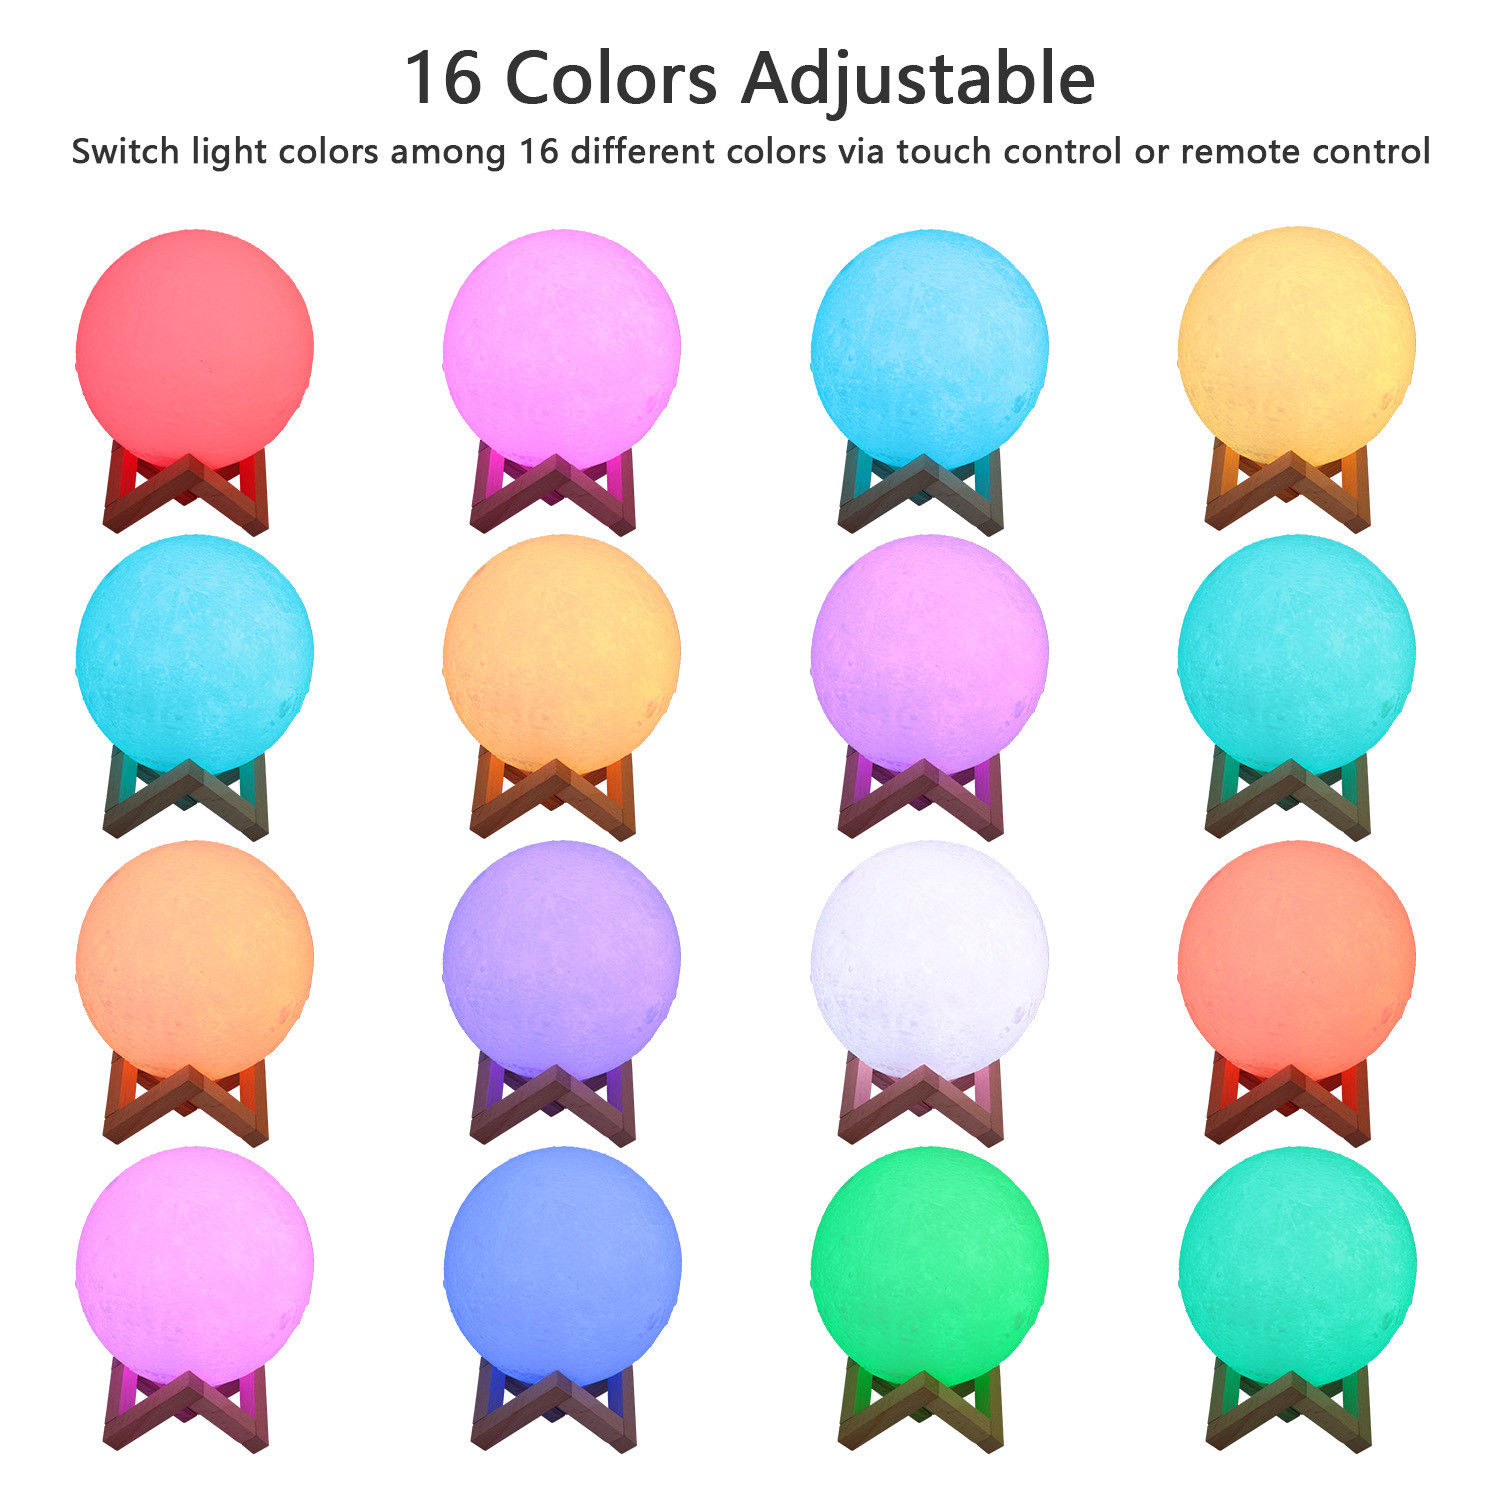 18 Cm 16 Colors Changeable 3d Print Moon Lamp Night Light Remote Touch Control Usb Led Night Light Home Bedroom Decor Creative